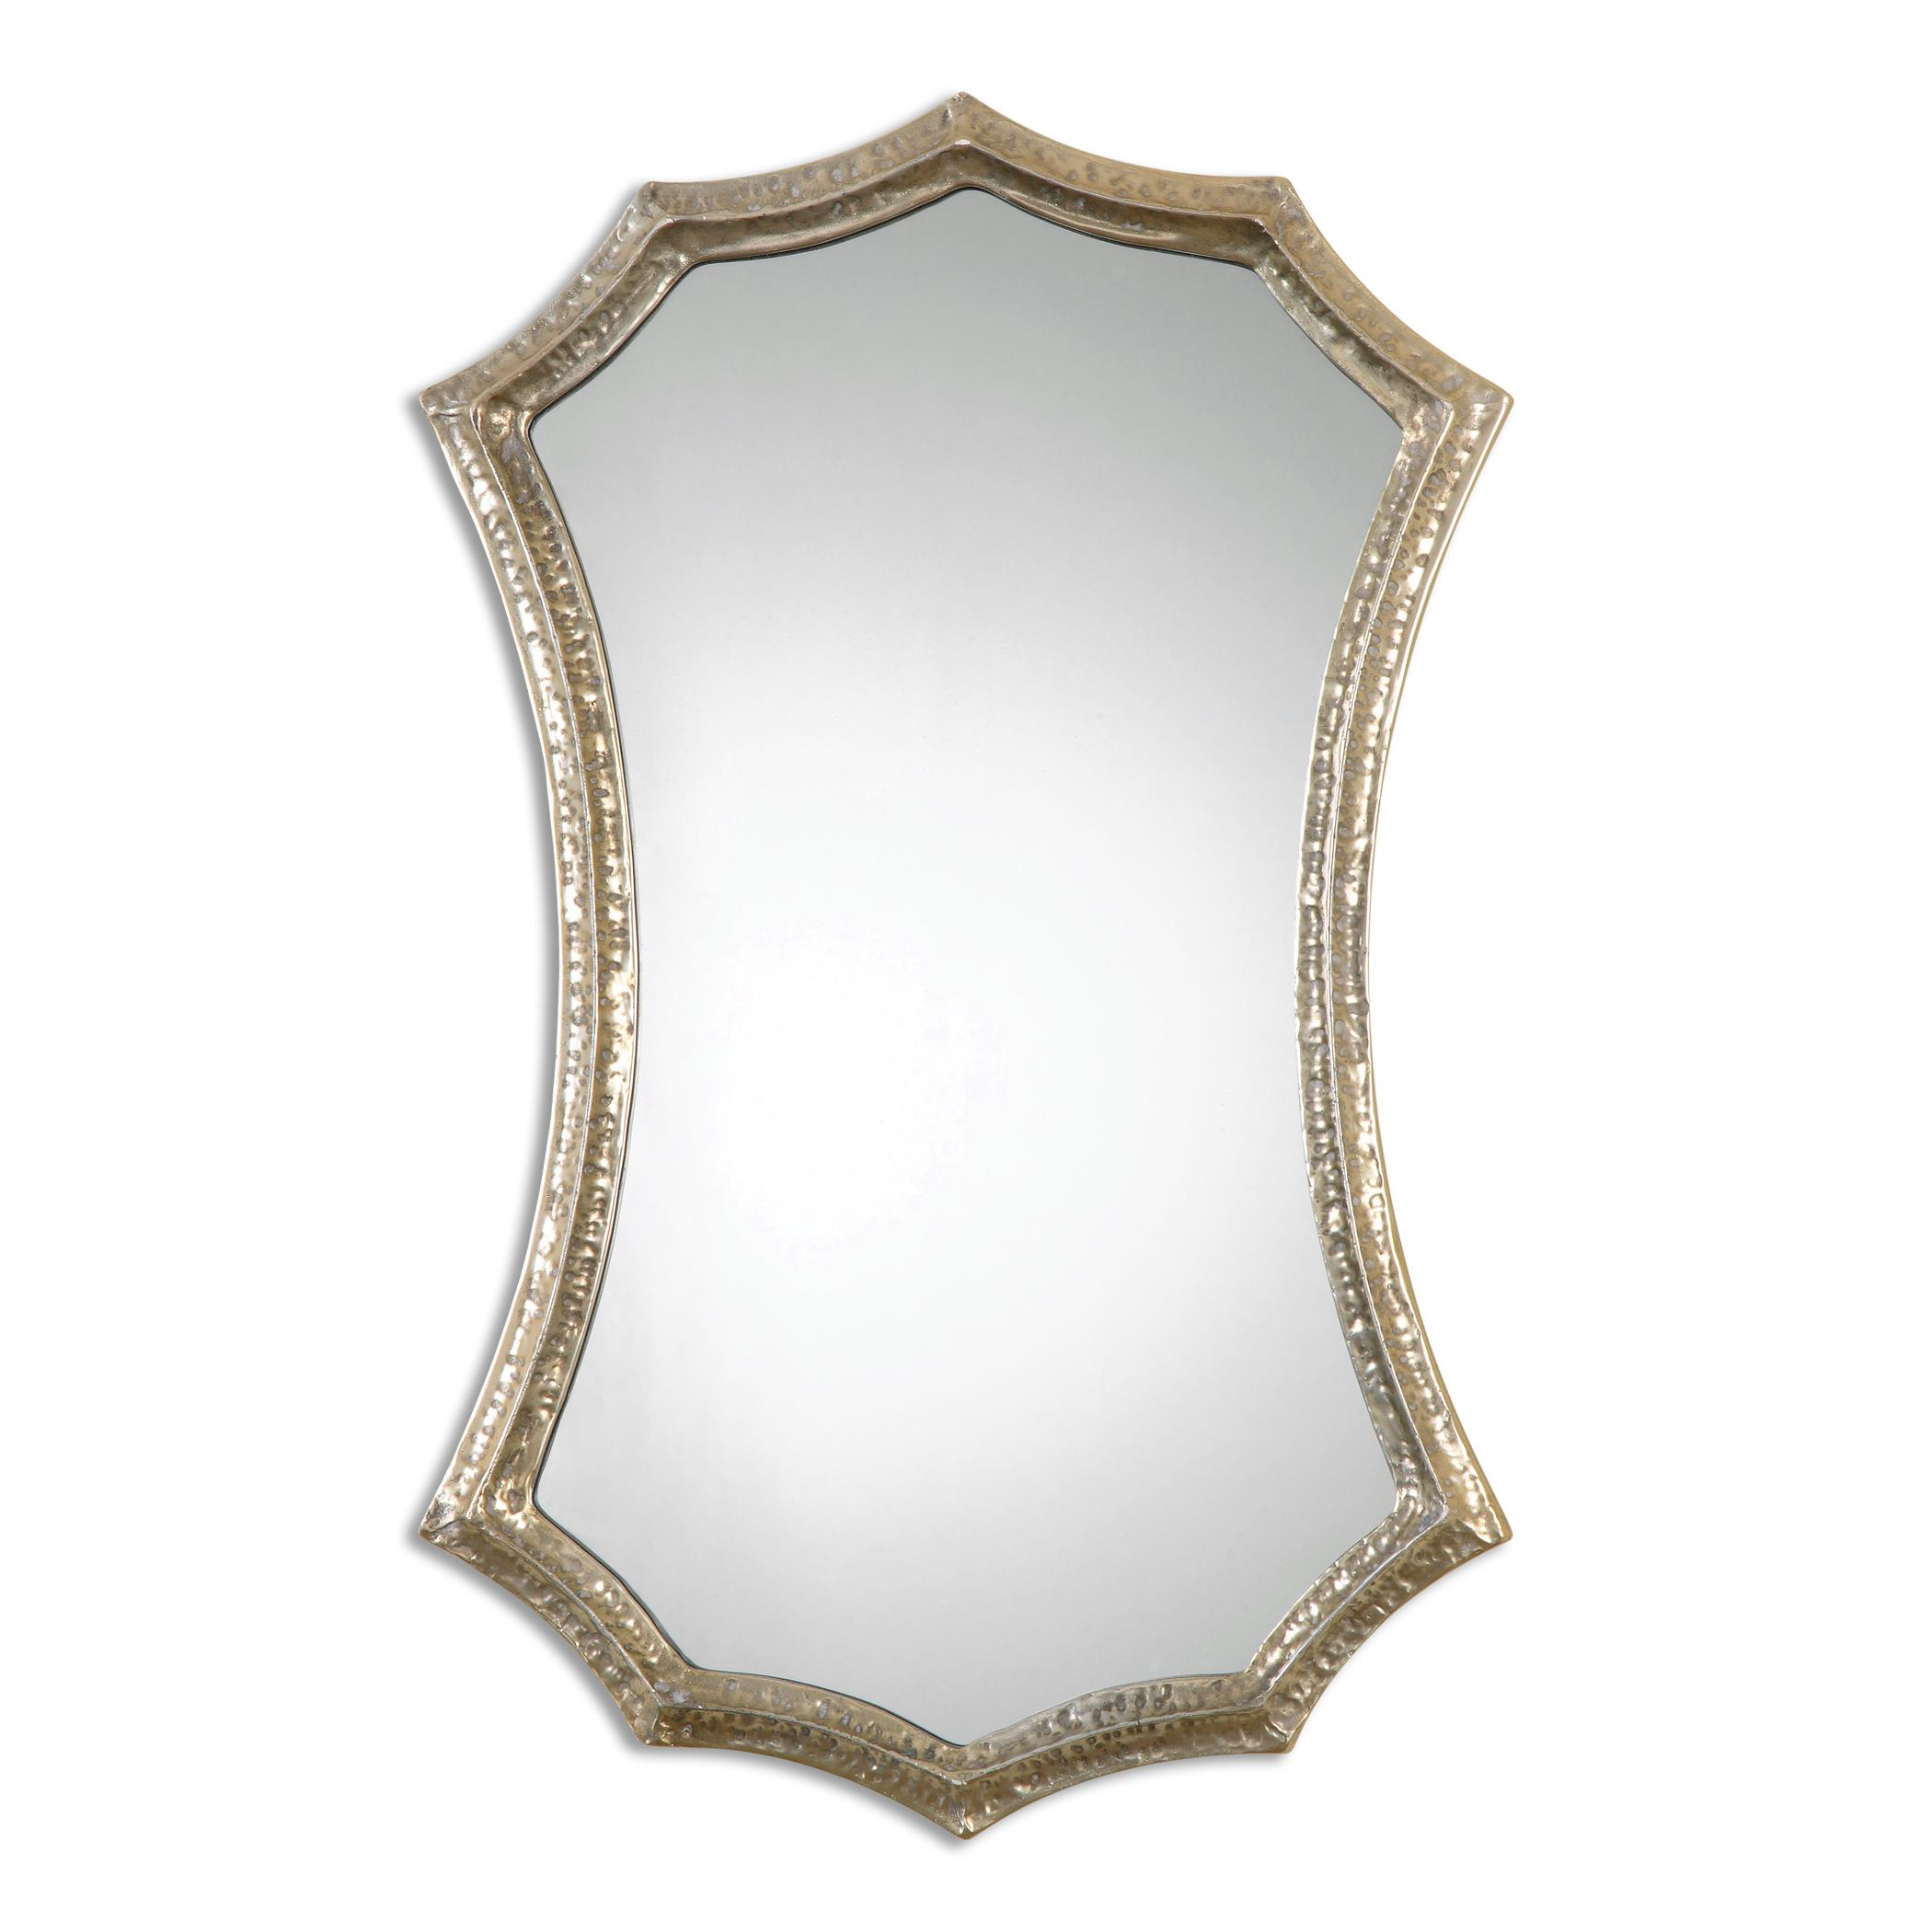 Uttermost Mirrors Mesdoura Silver Champagne Mirror - Item Number: 12911